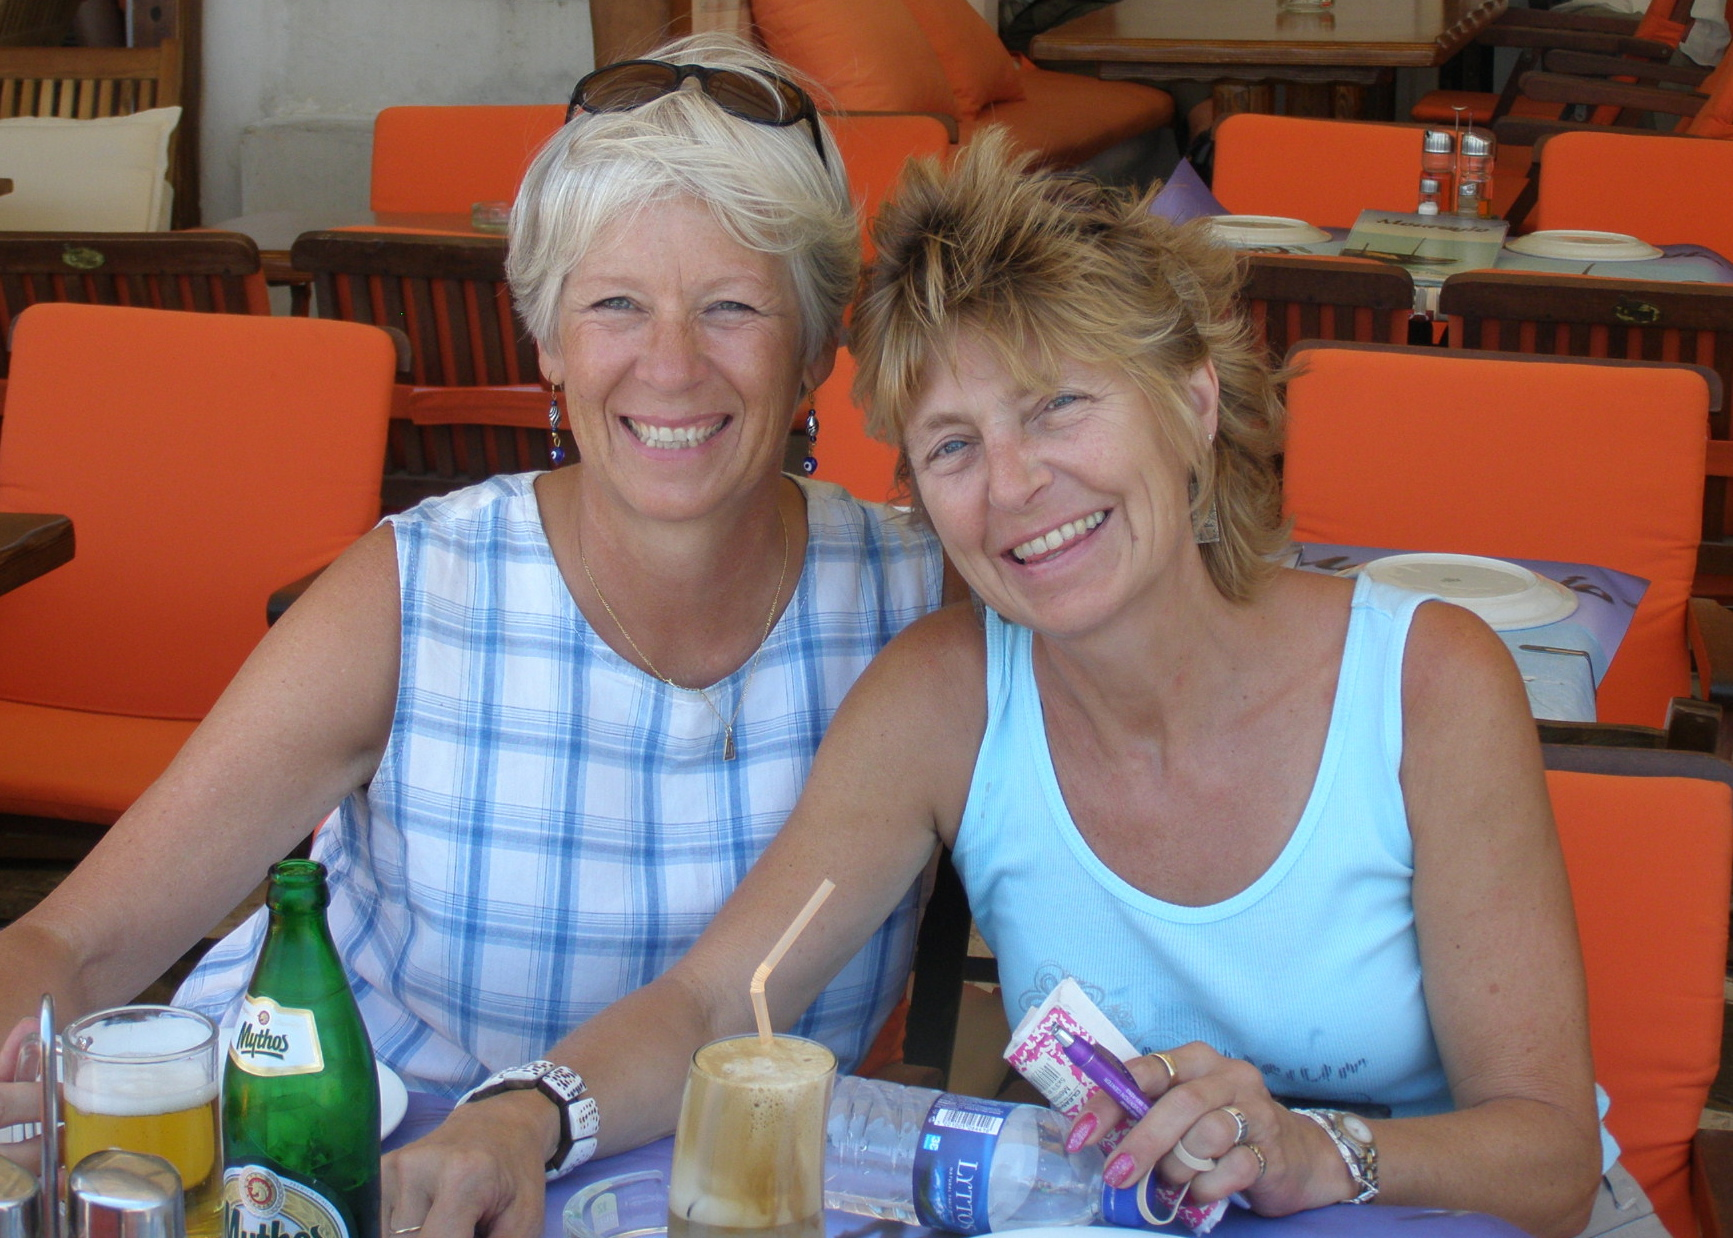 Ann Marie and Susie, happy as clams on Mykenos. Mykenos, Greece: Chapter 61, You must only to love them. http://mershon.wordpress.com